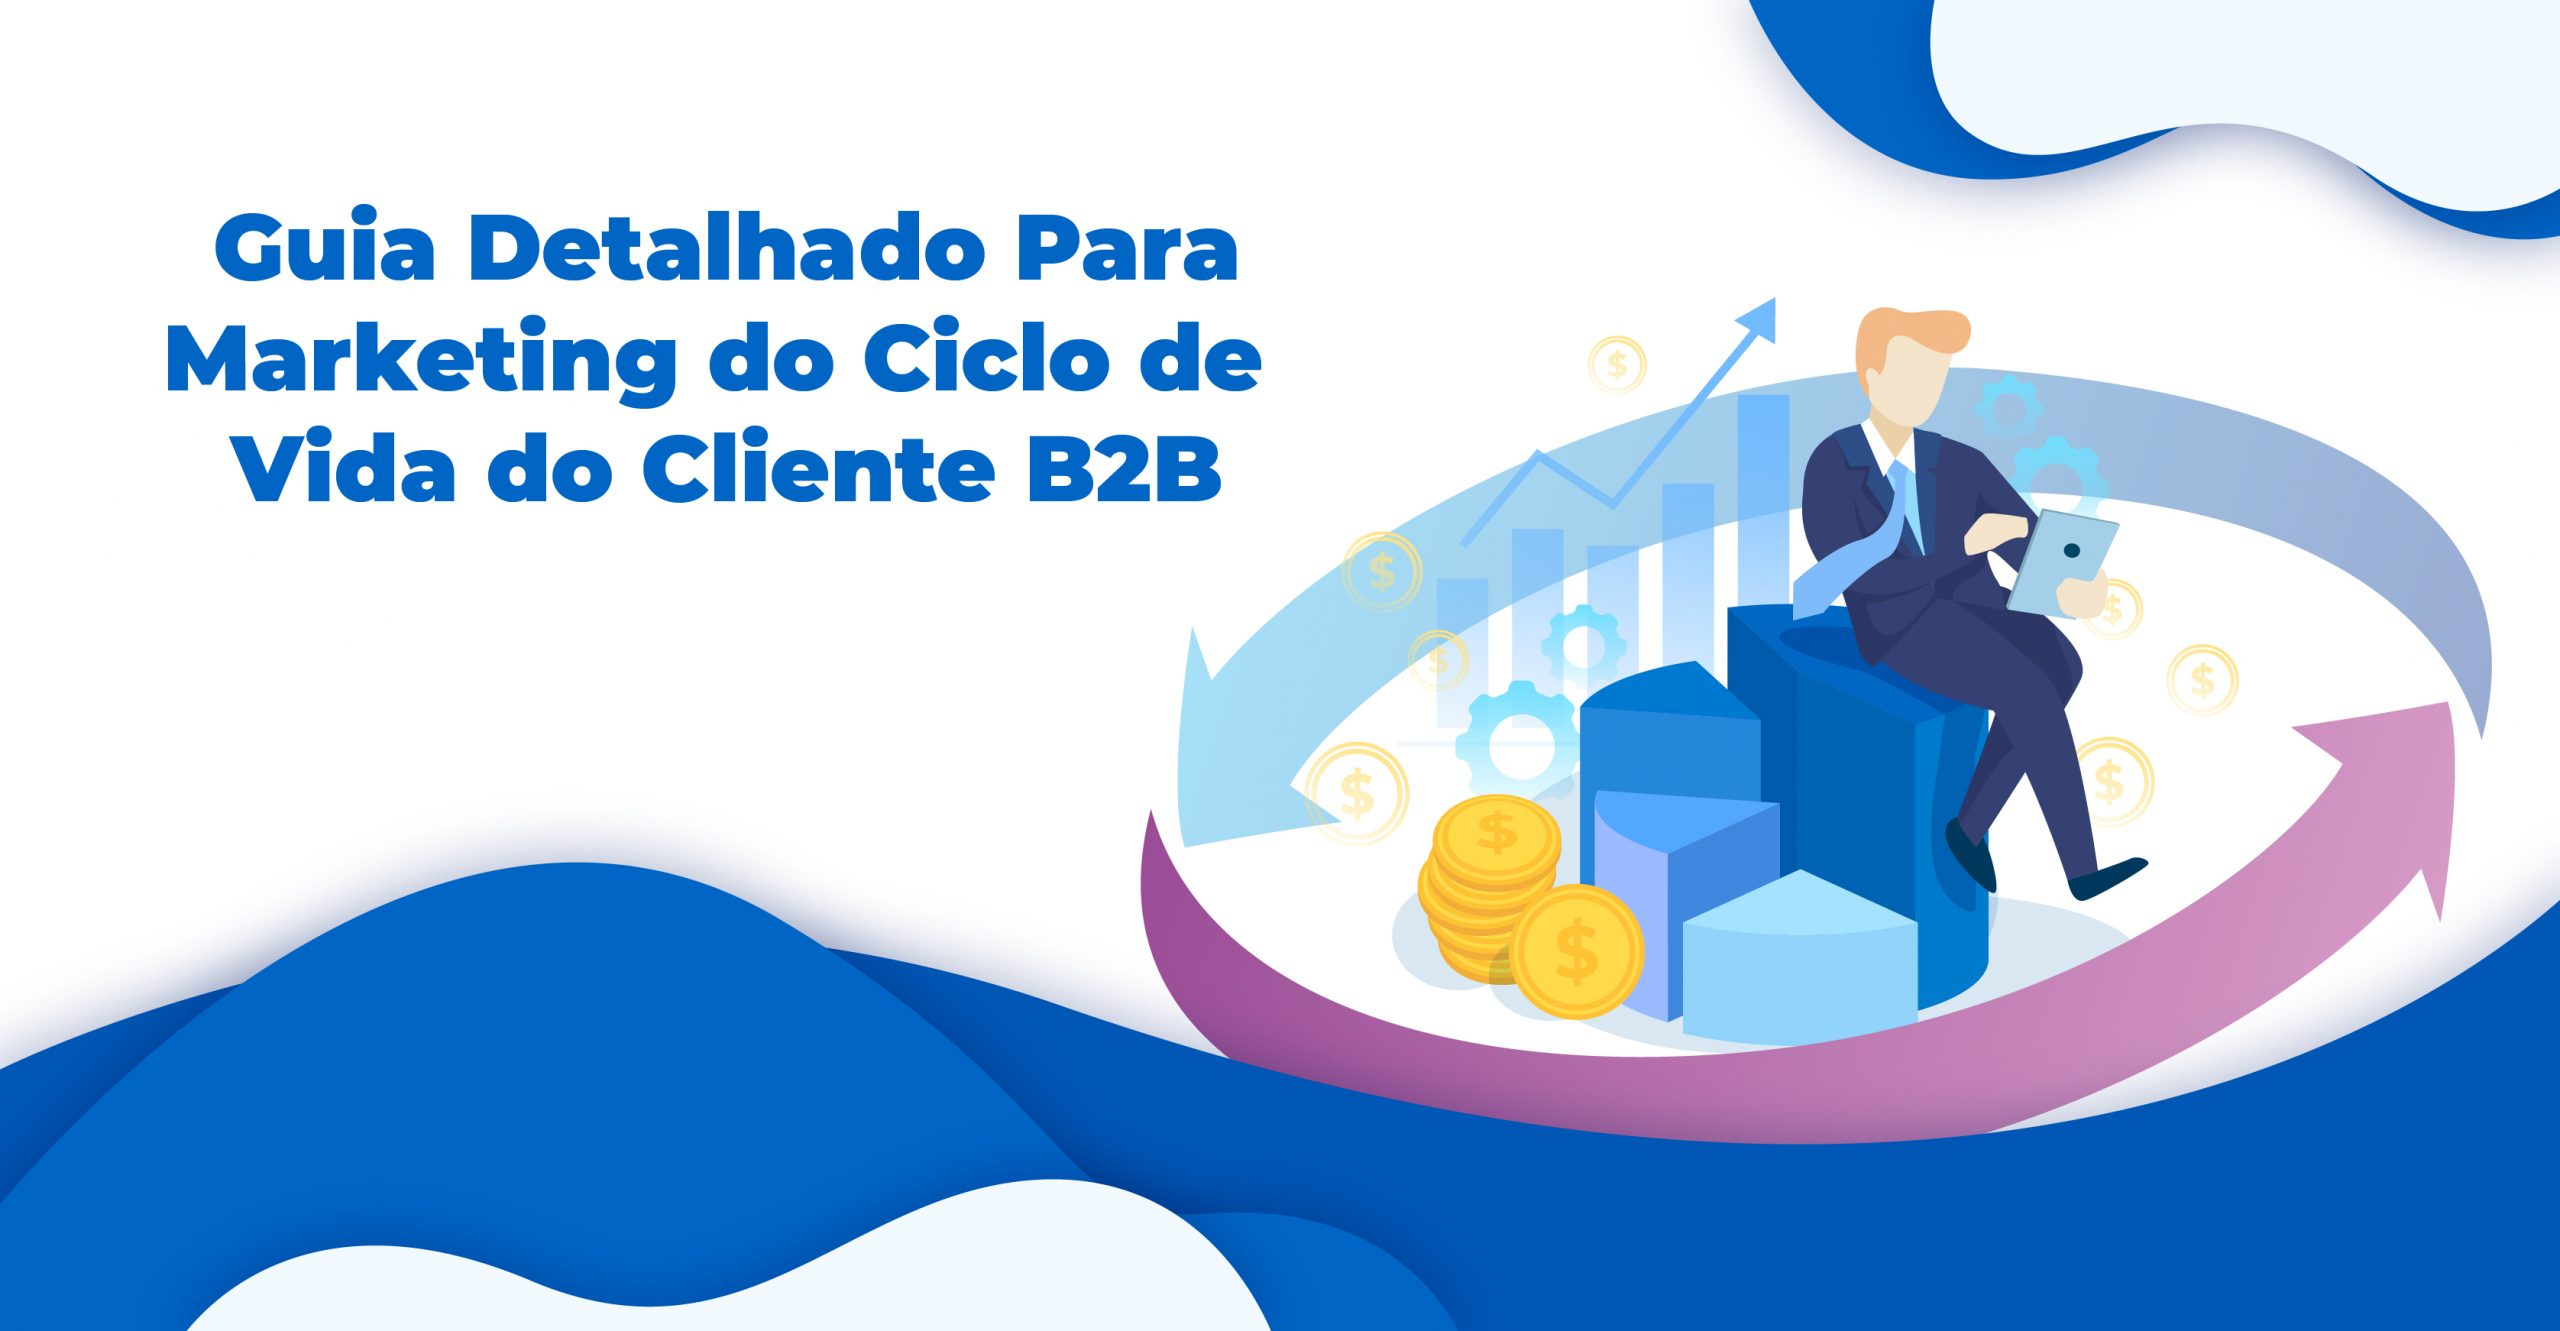 Guia Detalhado Para Marketing do Ciclo de Vida do Cliente B2B